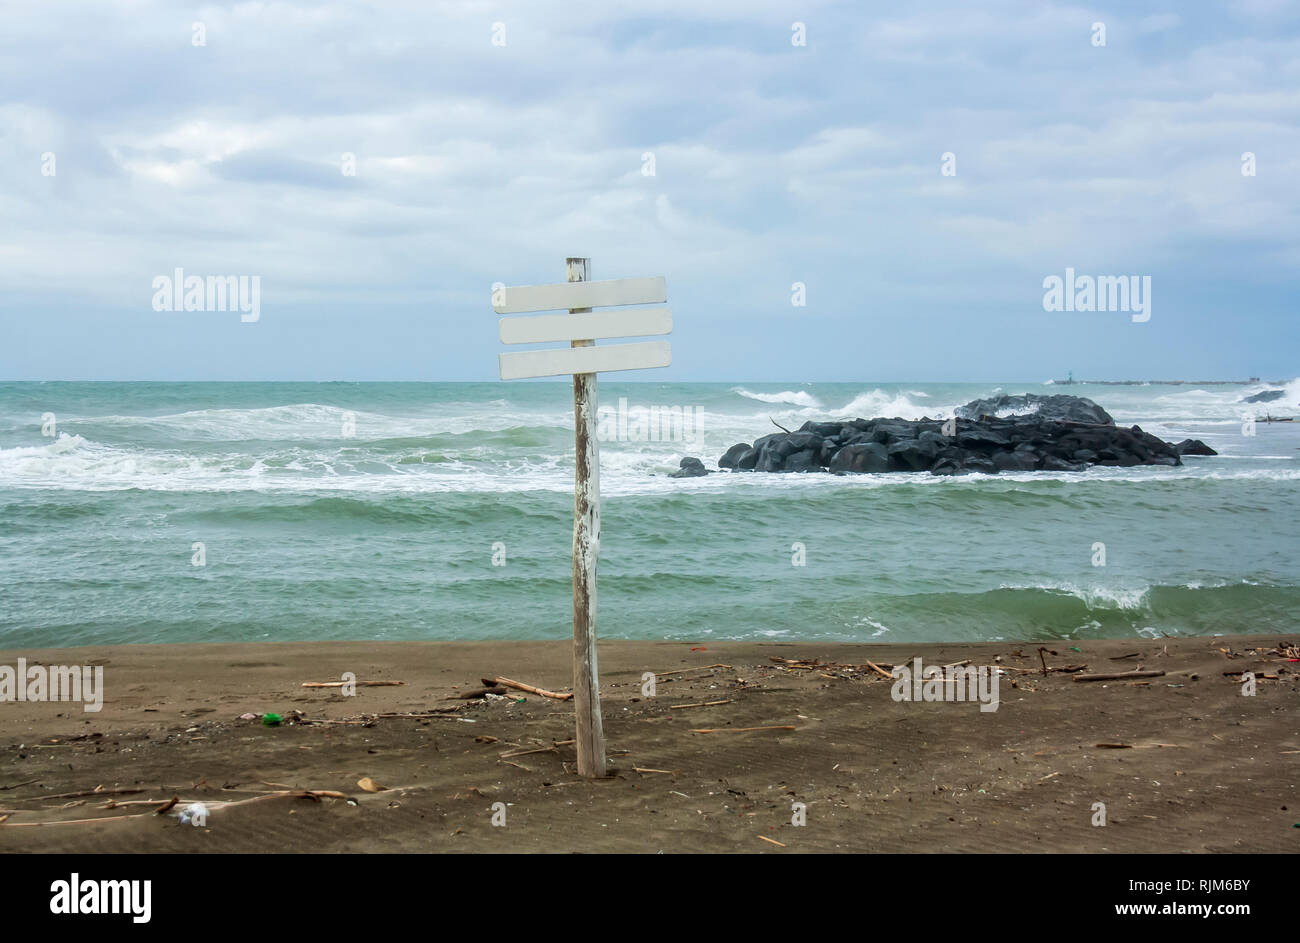 A blank sign in front of the sea on Fiumicino (Rome) sea. Sea waves bump into rocks. Beach shoot in a winter windy day. - Stock Image